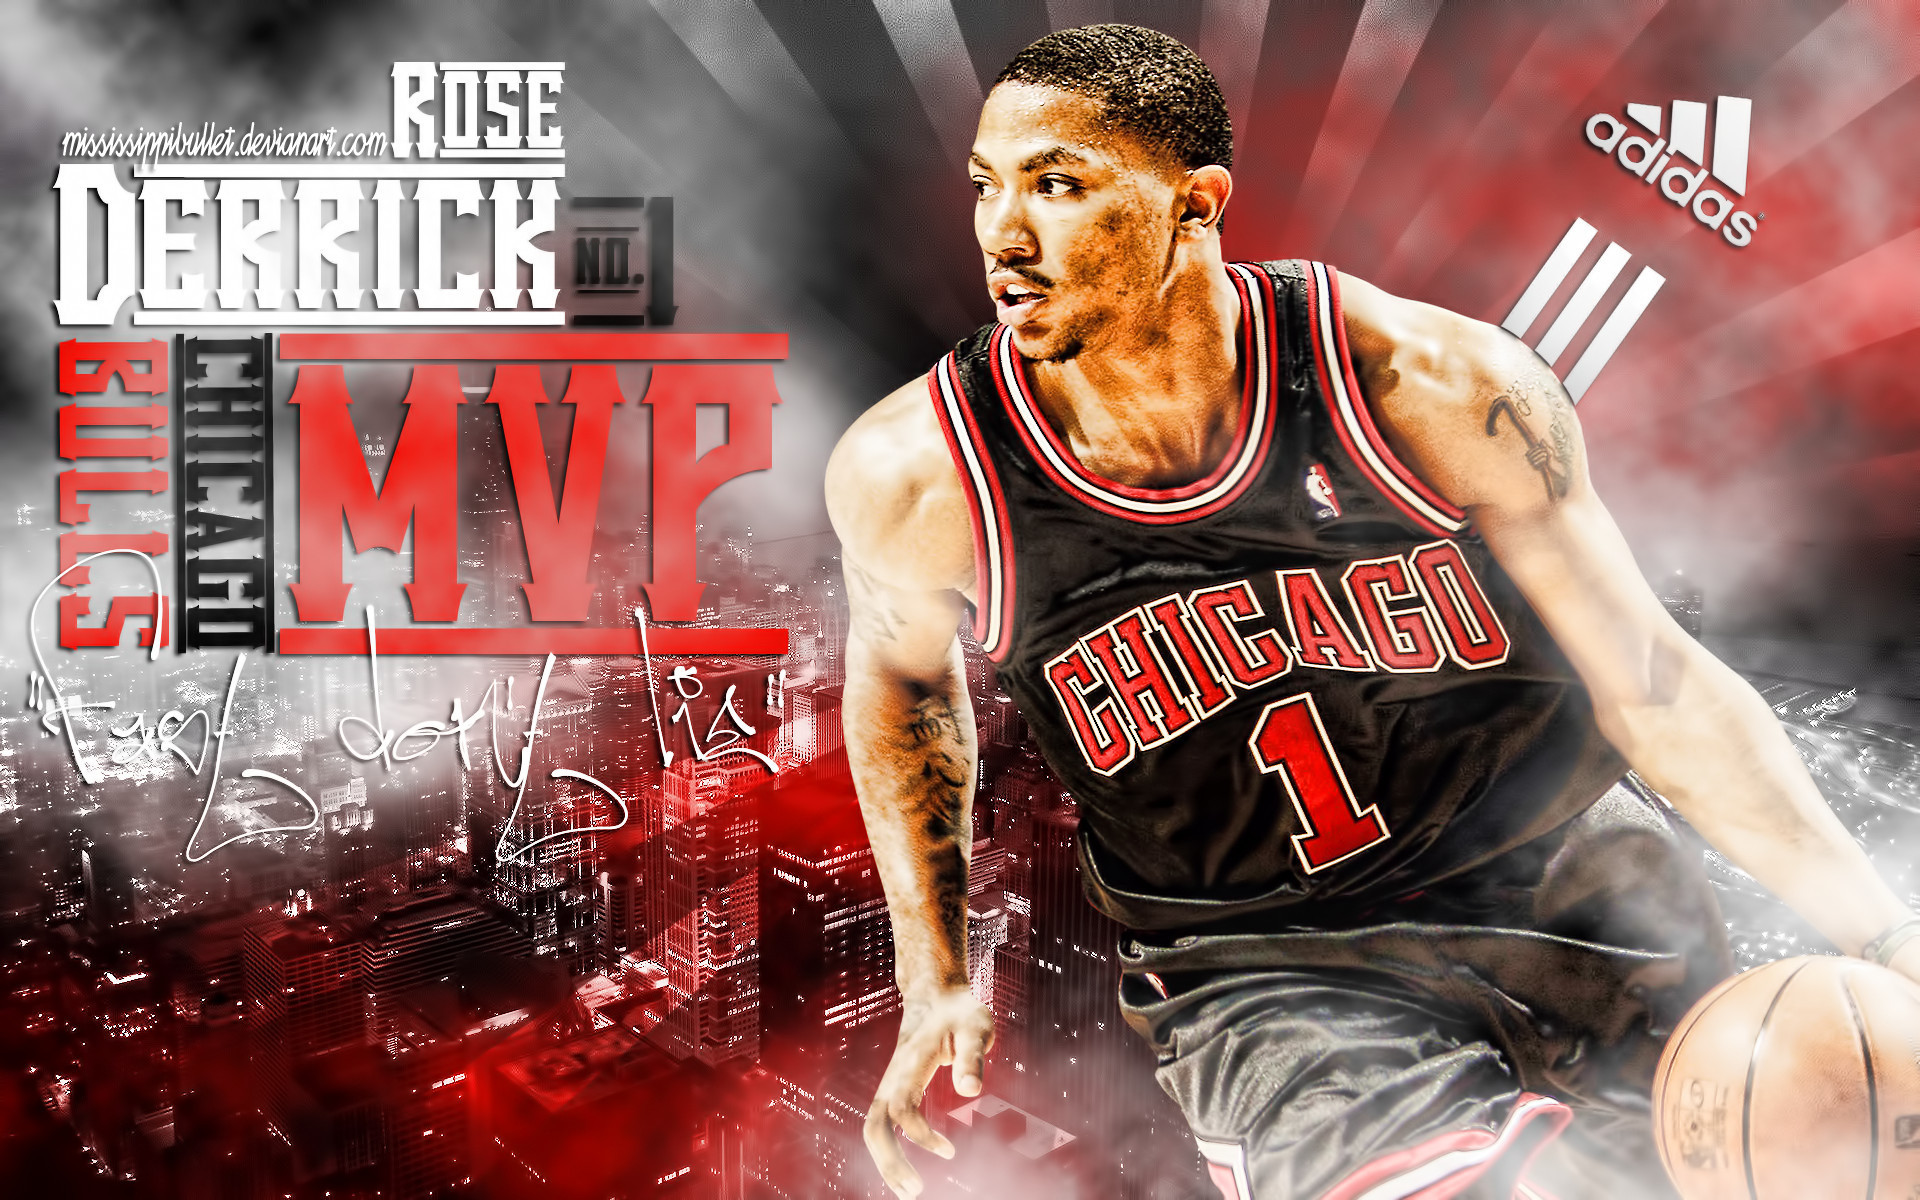 1920x1200  <b>Derrick Rose HD Wallpaper</b> 1920x1080 - WallpaperSafari